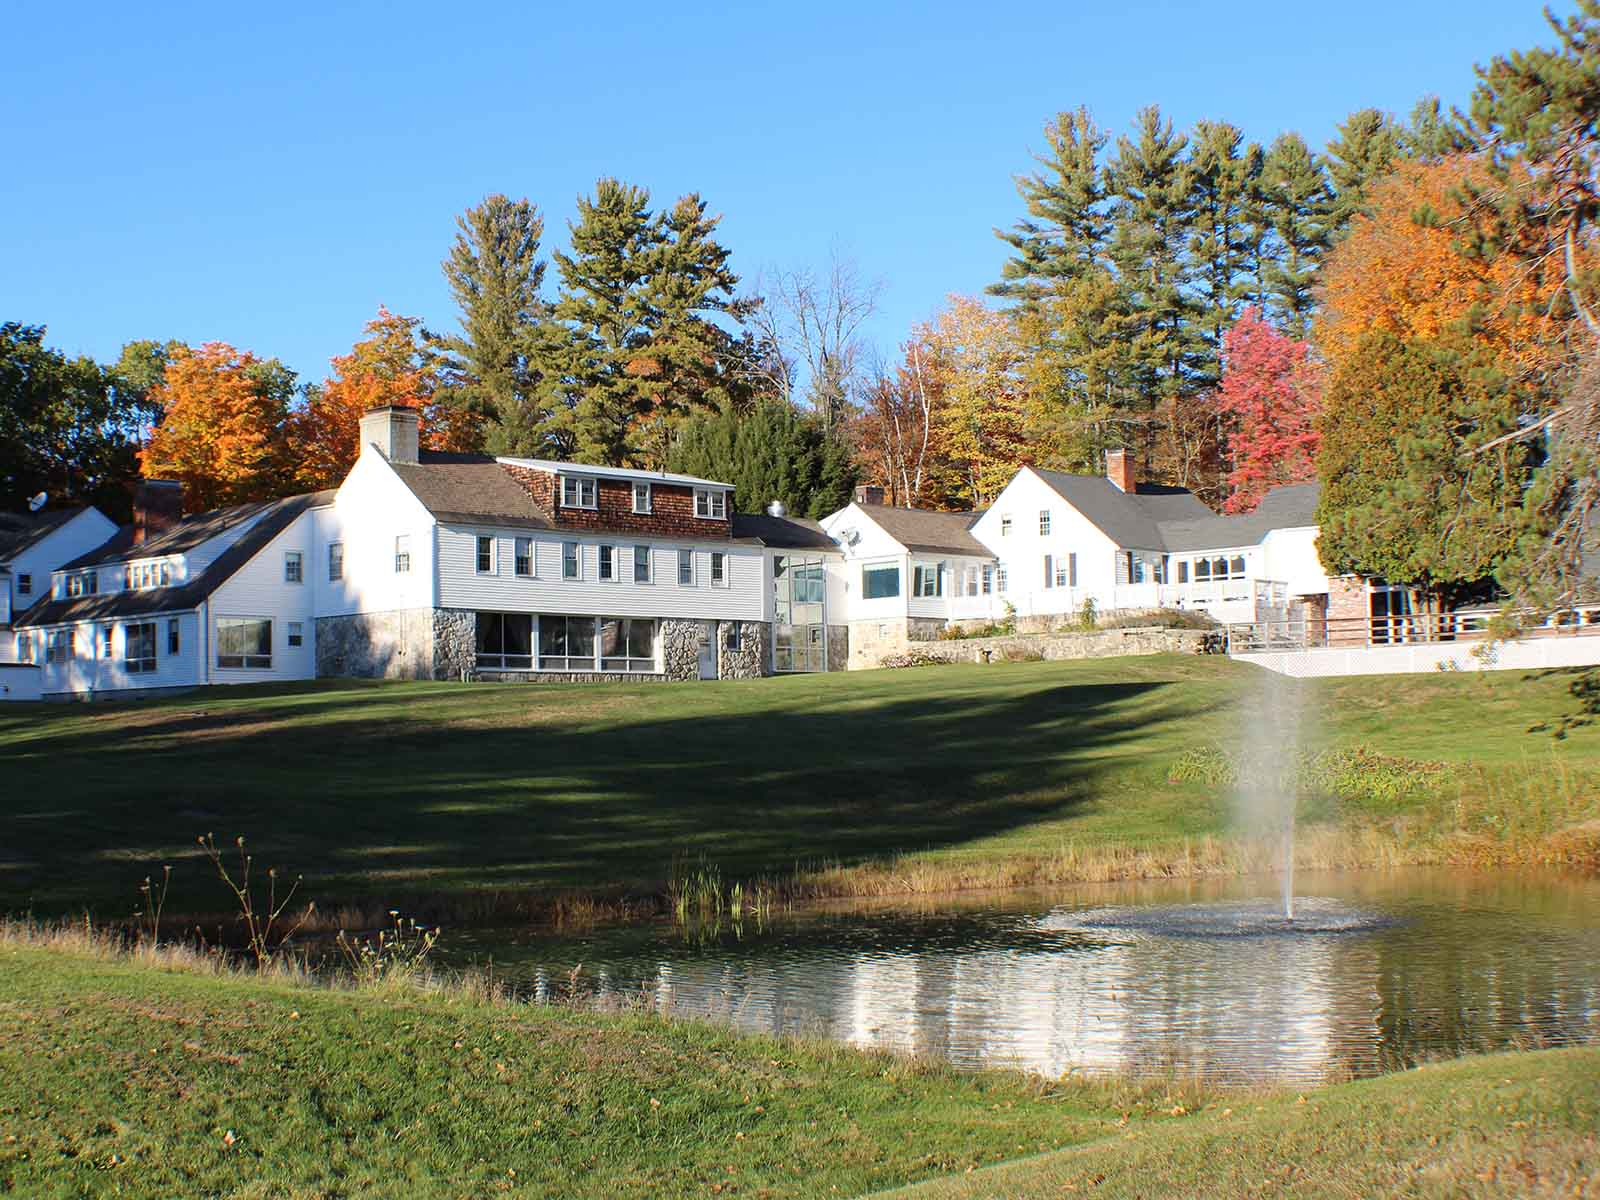 The scenic New Hampshire Mountain Inn with fall foliage.